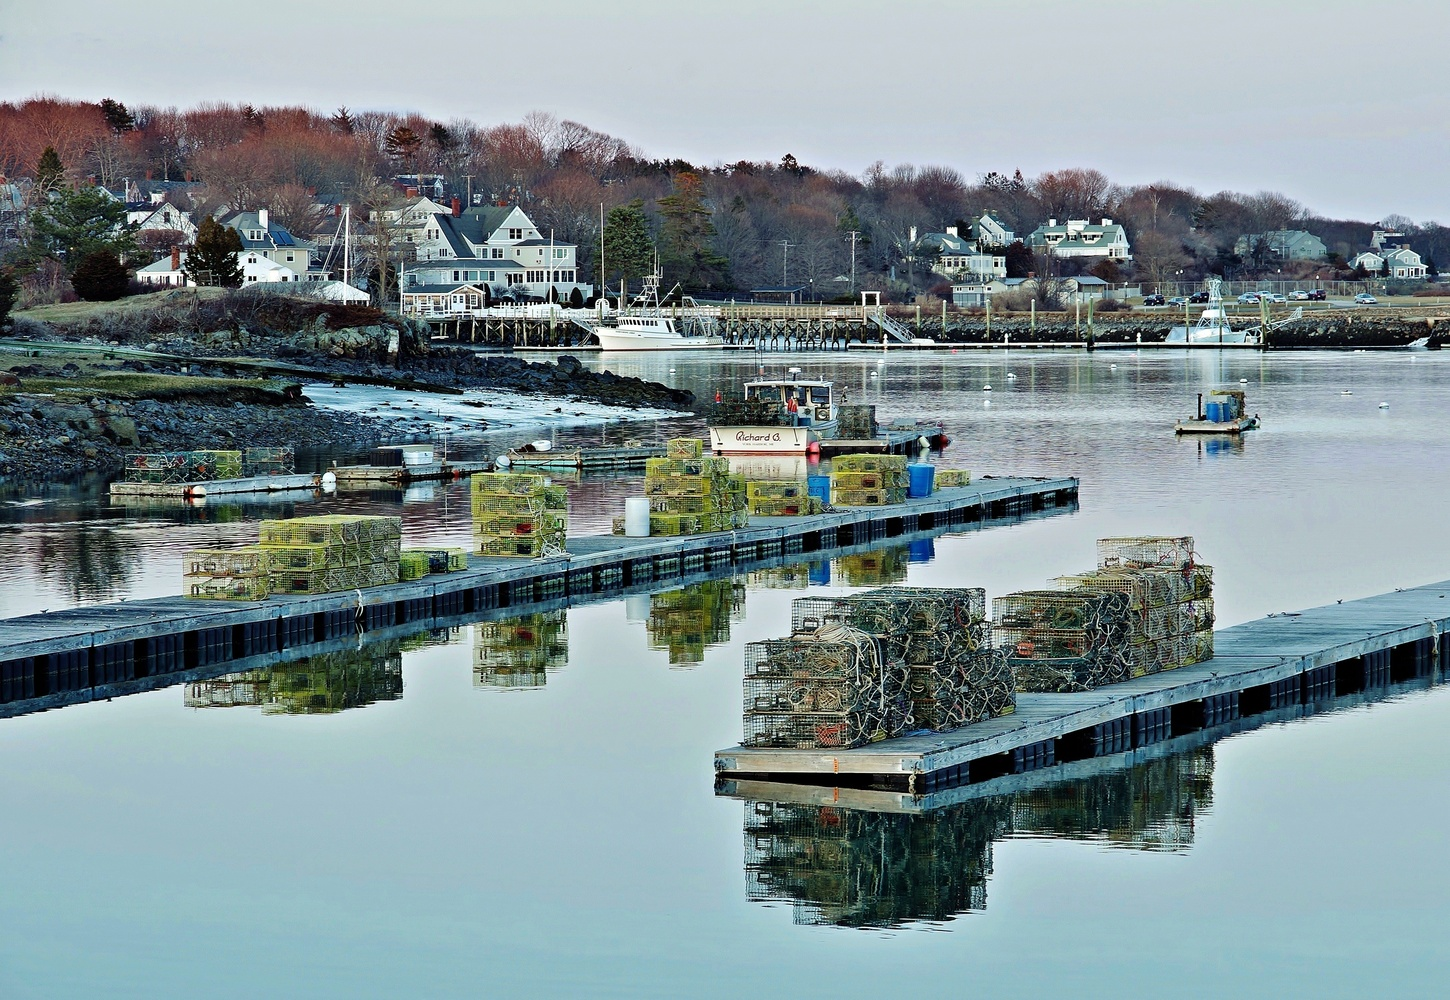 Harbor reflections by James Mlodynia